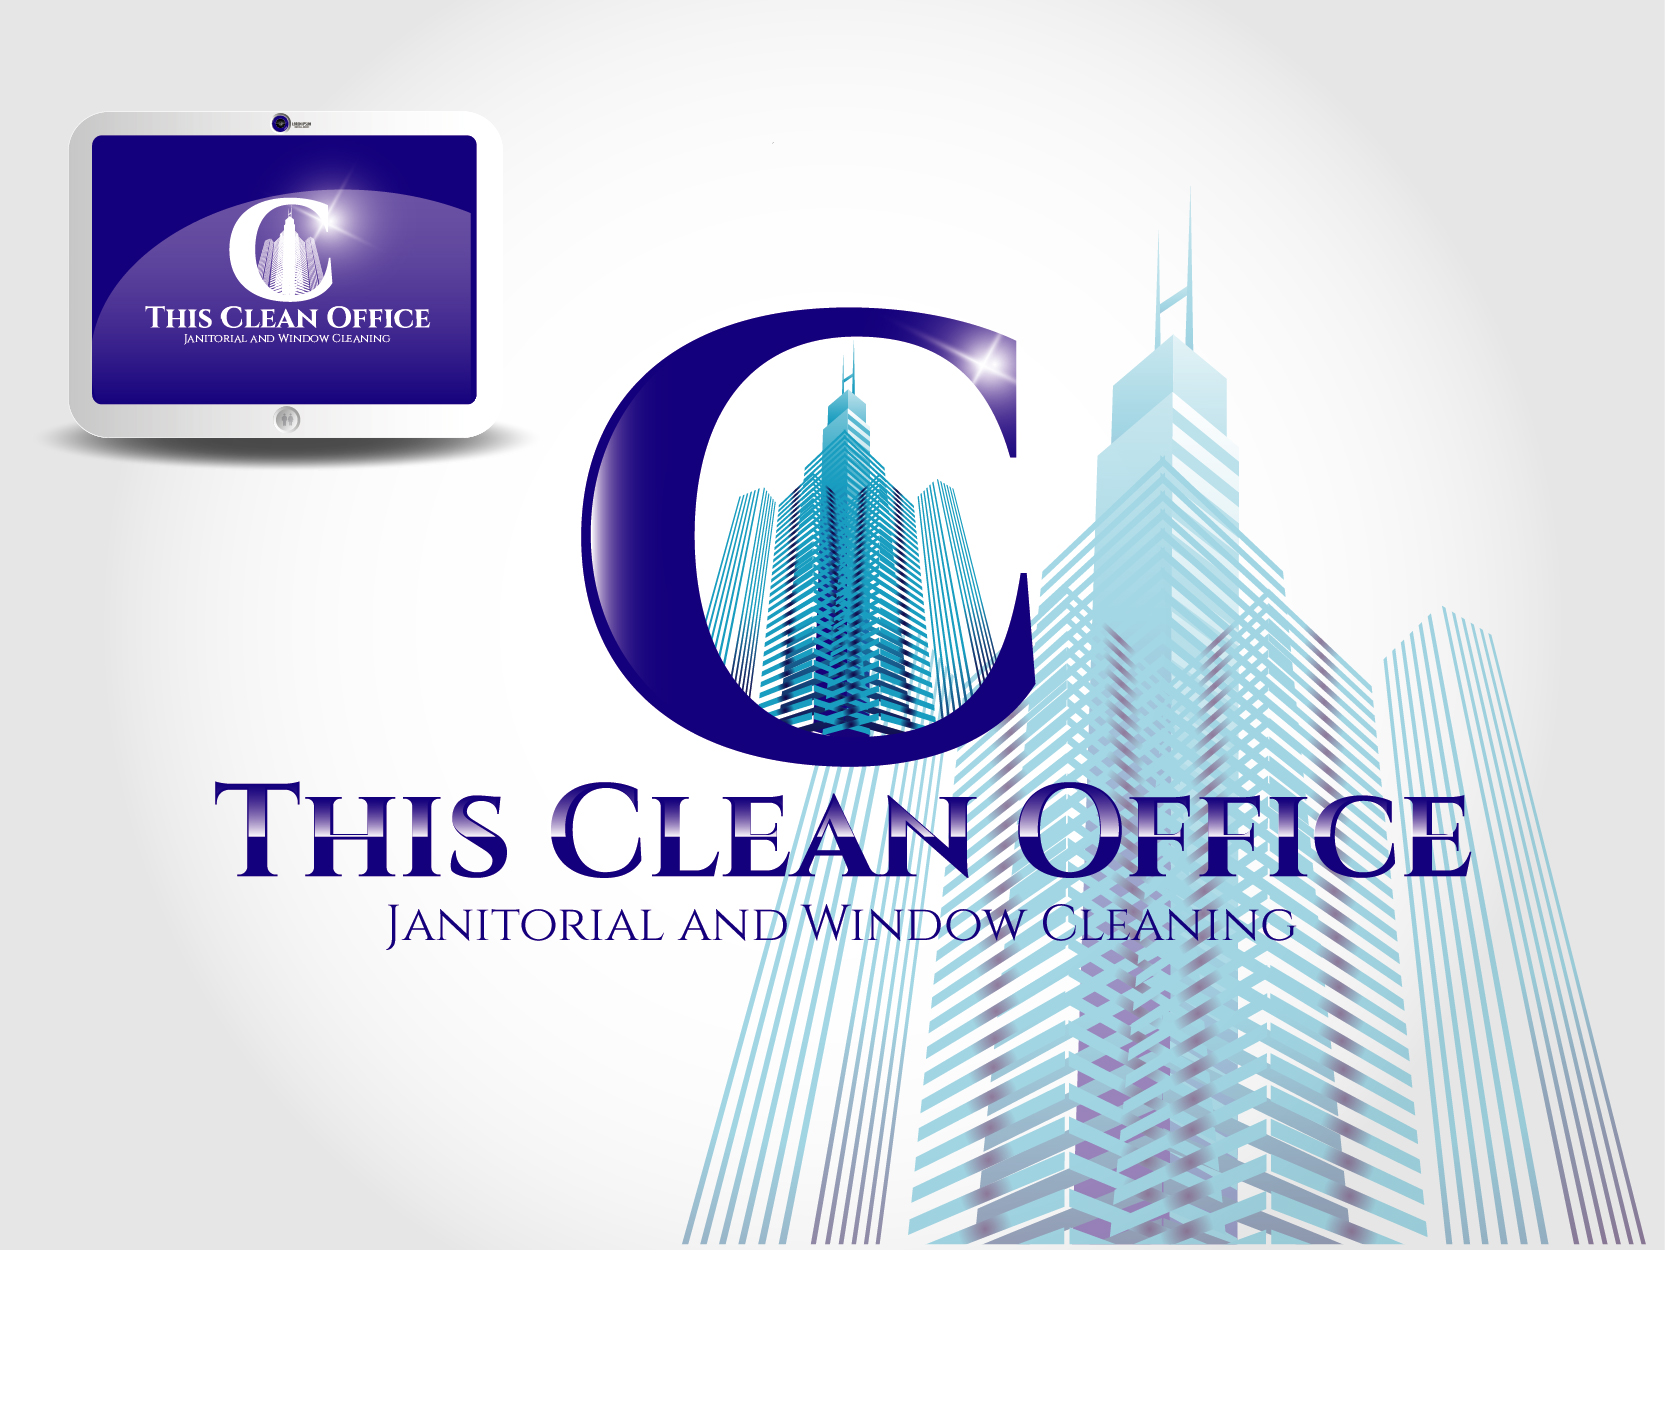 Logo Design by VENTSISLAV KOVACHEV - Entry No. 49 in the Logo Design Contest Professional and Unforgettable Logo Design for This Clean Office.